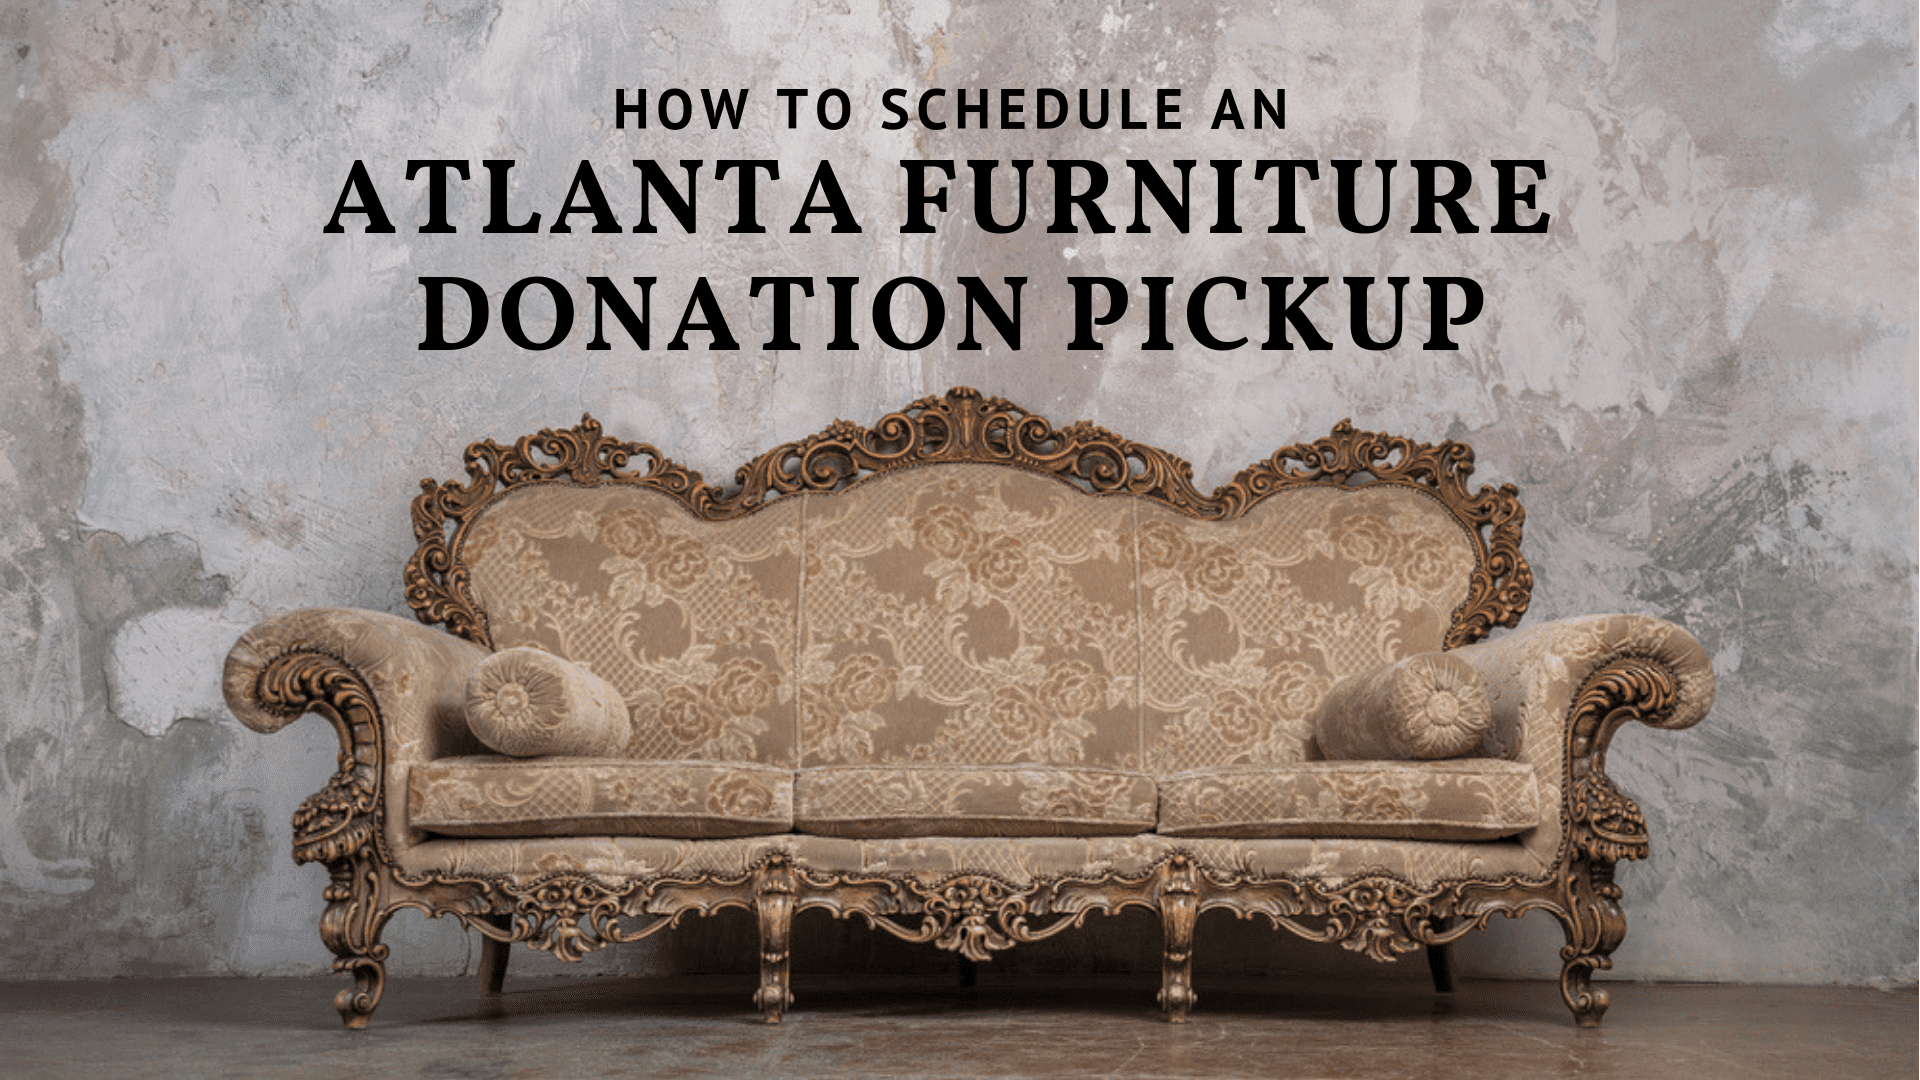 Donate Furniture Near Me Pick Up How To Schedule An Atlanta Furniture Donation Pickup Big League